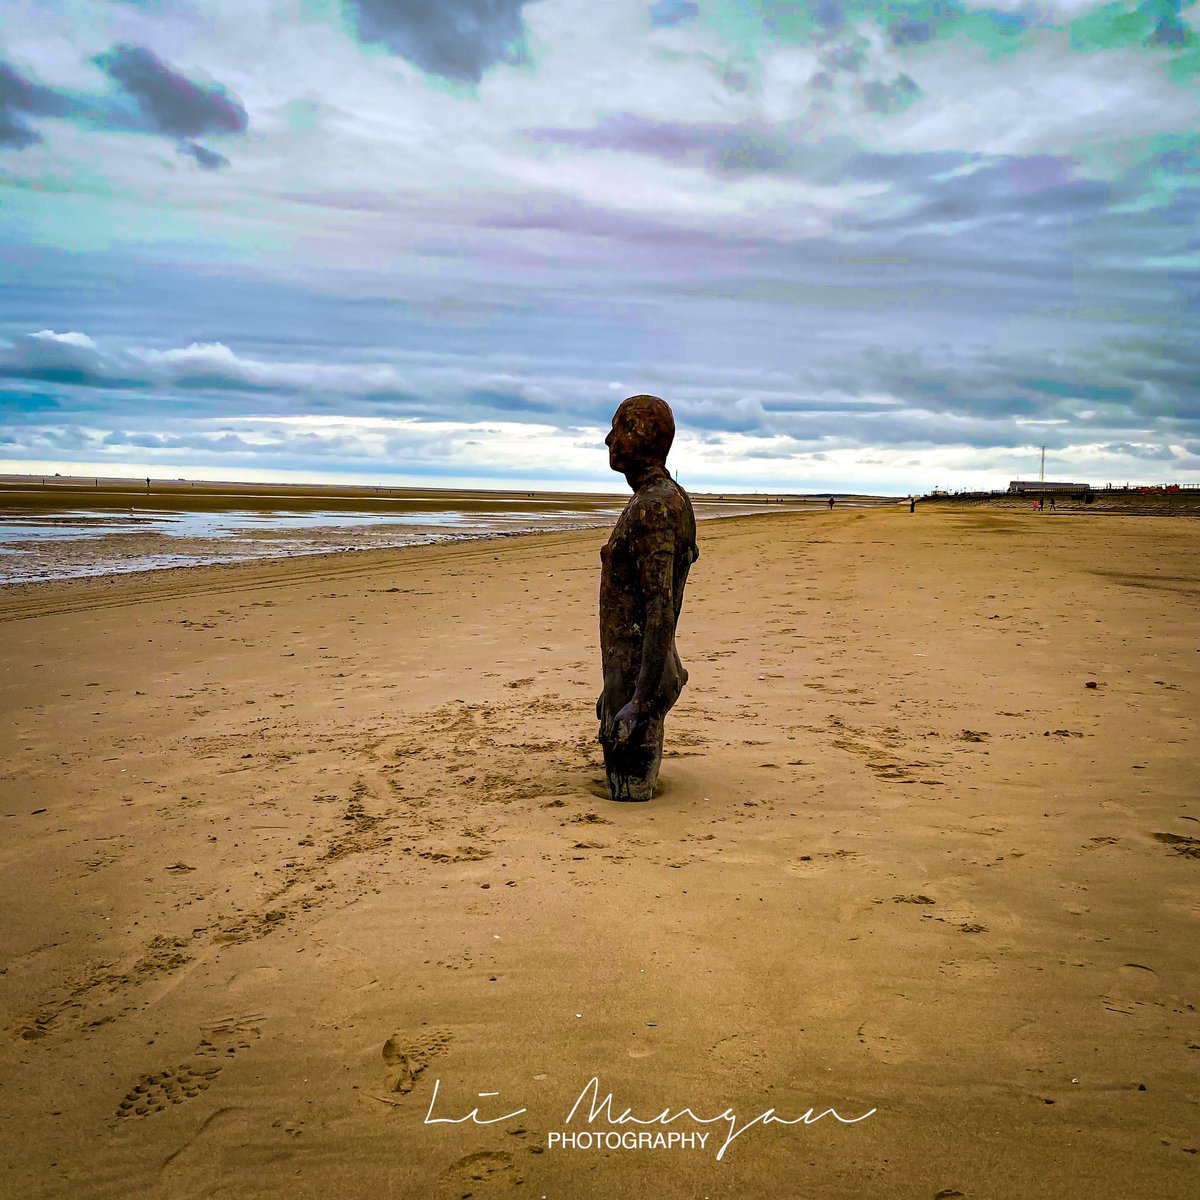 Nice place to sit and ponder the world.              by Li Mangan  #liverpool #liverpoolphotography  #crosby #crosbybeach #anotherplace #ironmen #ironman #anthonygormley #sefton #Lightroom #photoshop  #agameoftones  #nikond3500 #photoshop #igersmersey500 #limanganphotographypic.twitter.com/u5nZdYvsbO